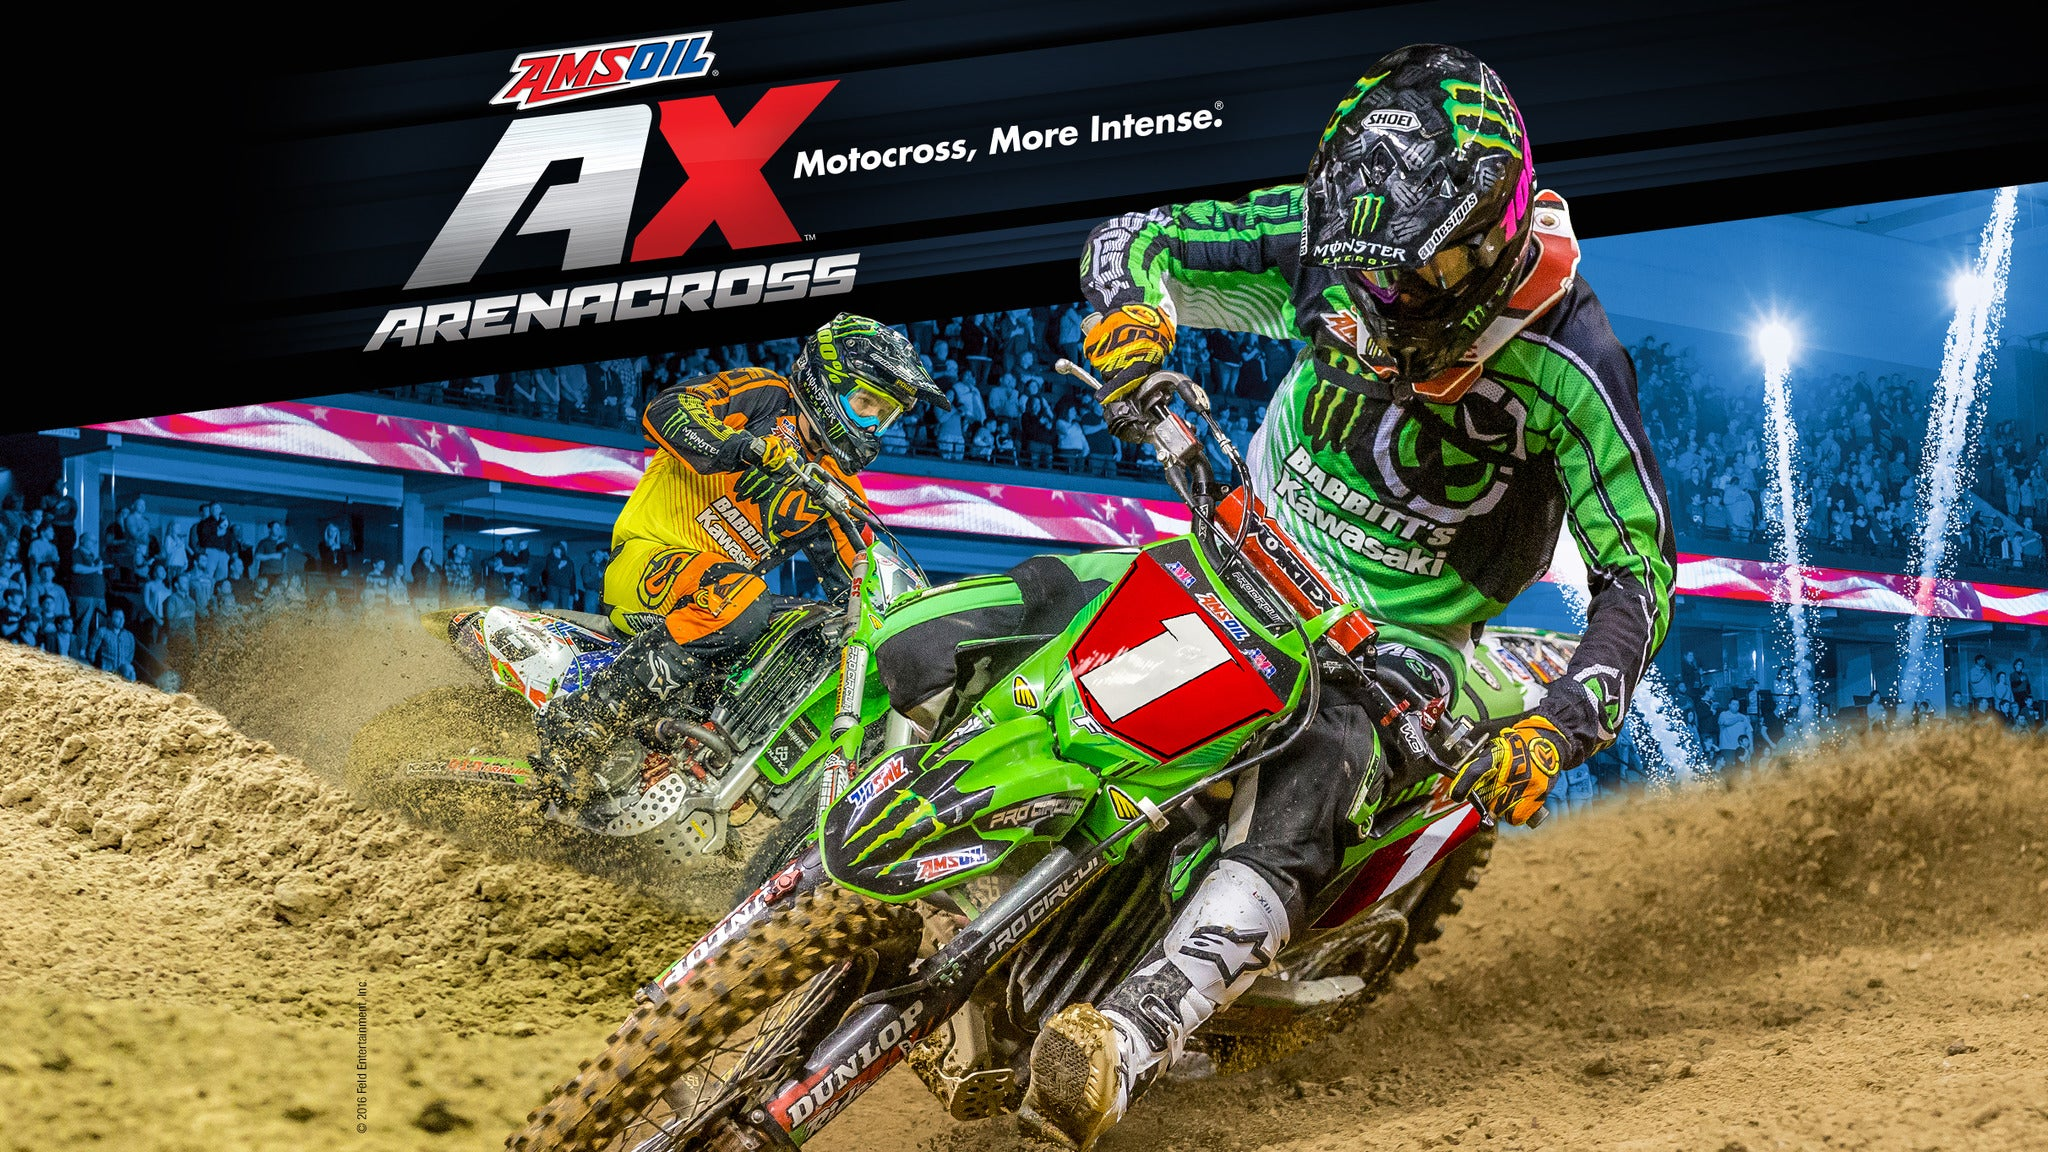 AMSOIL Arenacross Amateur Day at Smoothie King Center